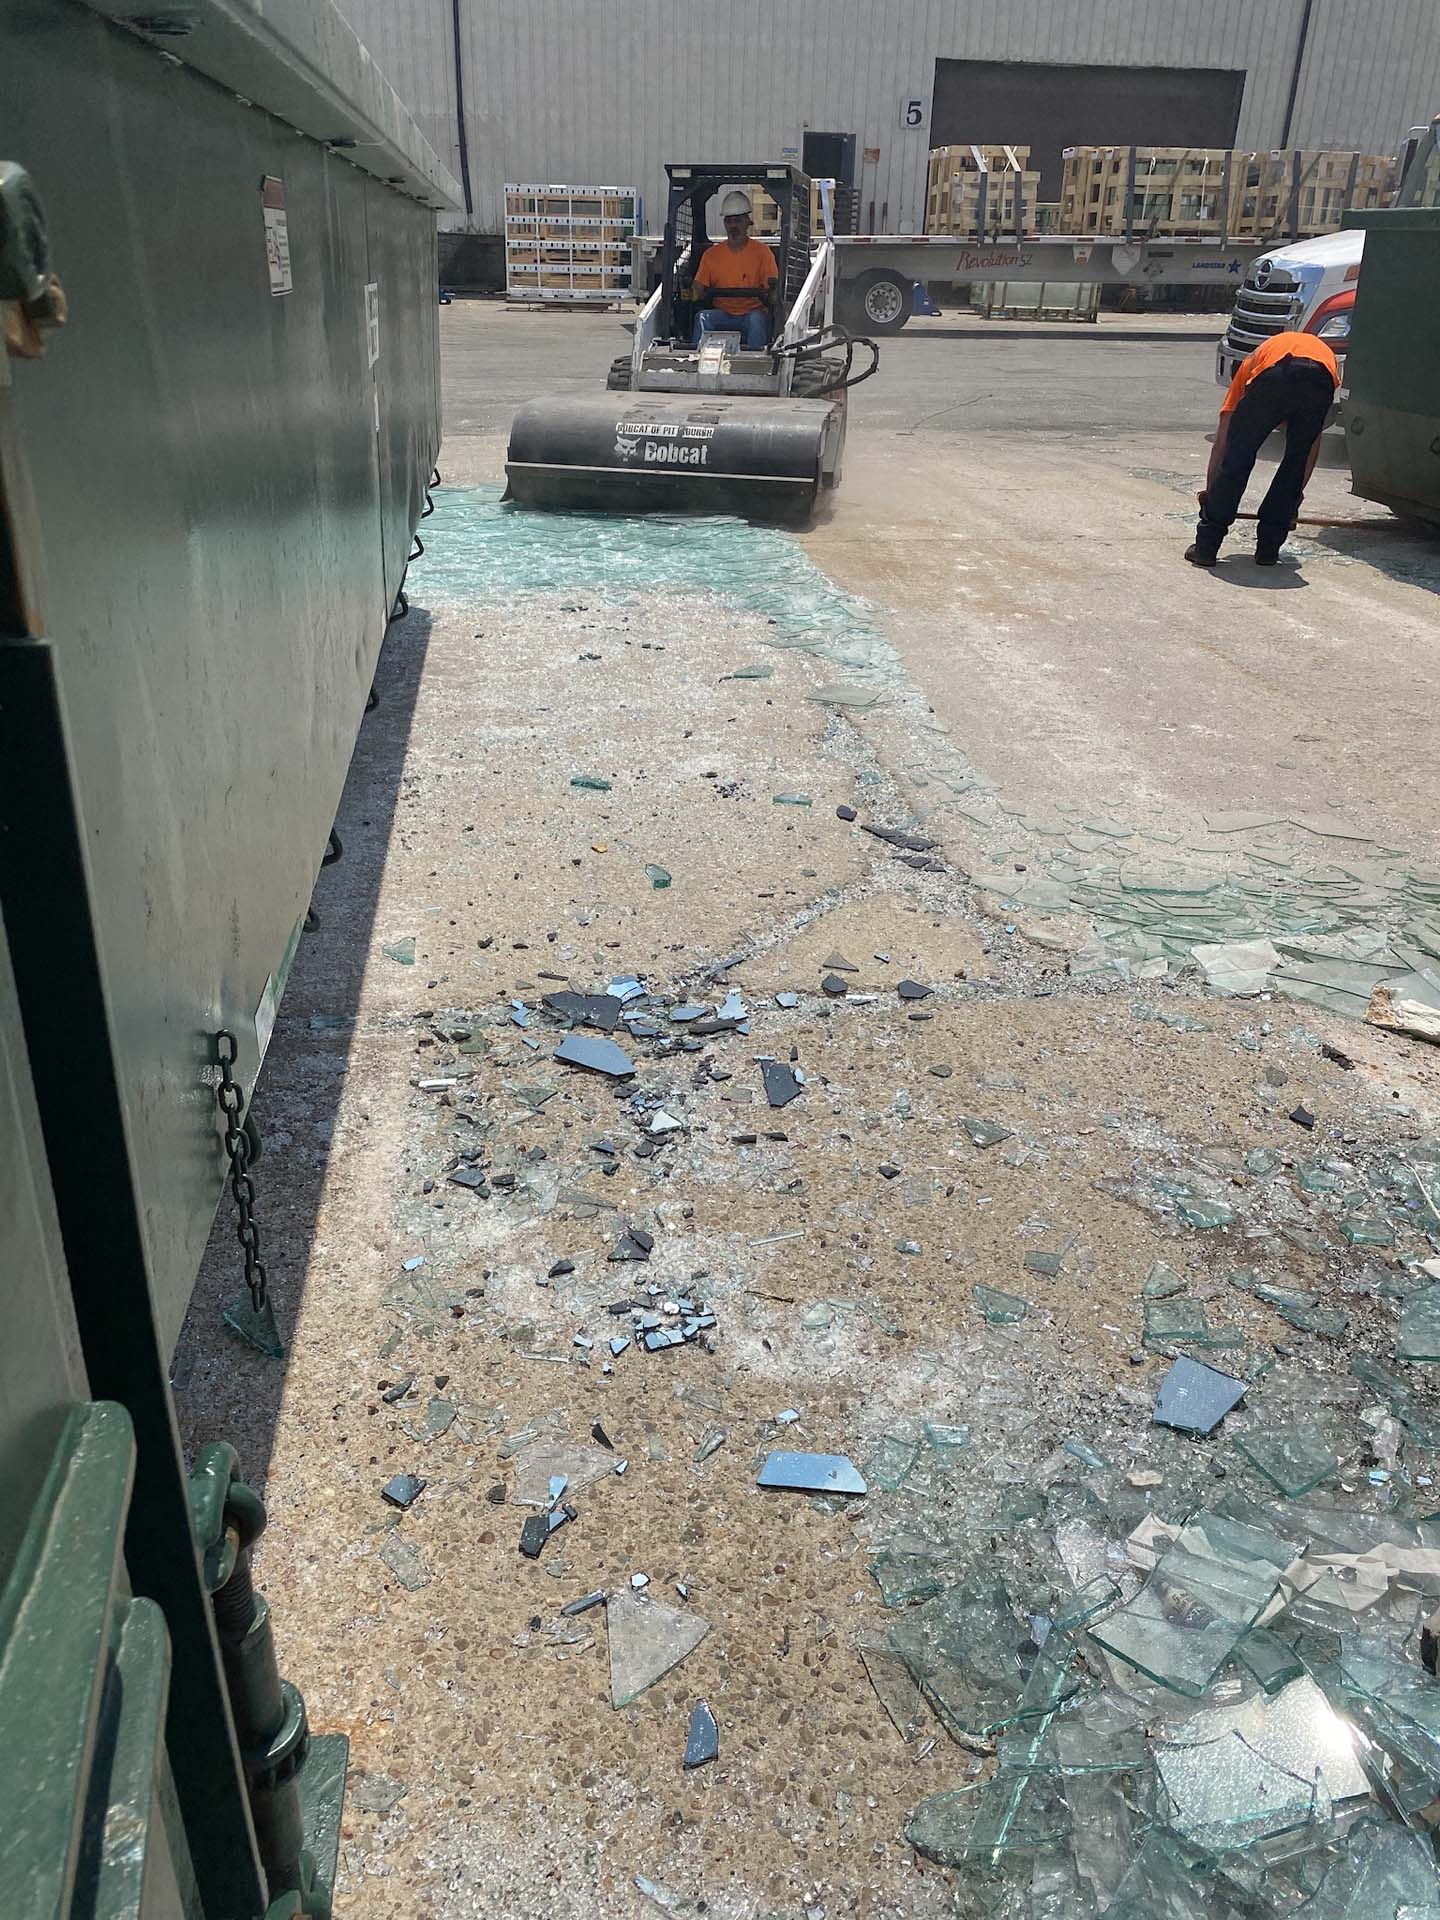 crew cleaning up broken glass on the ground